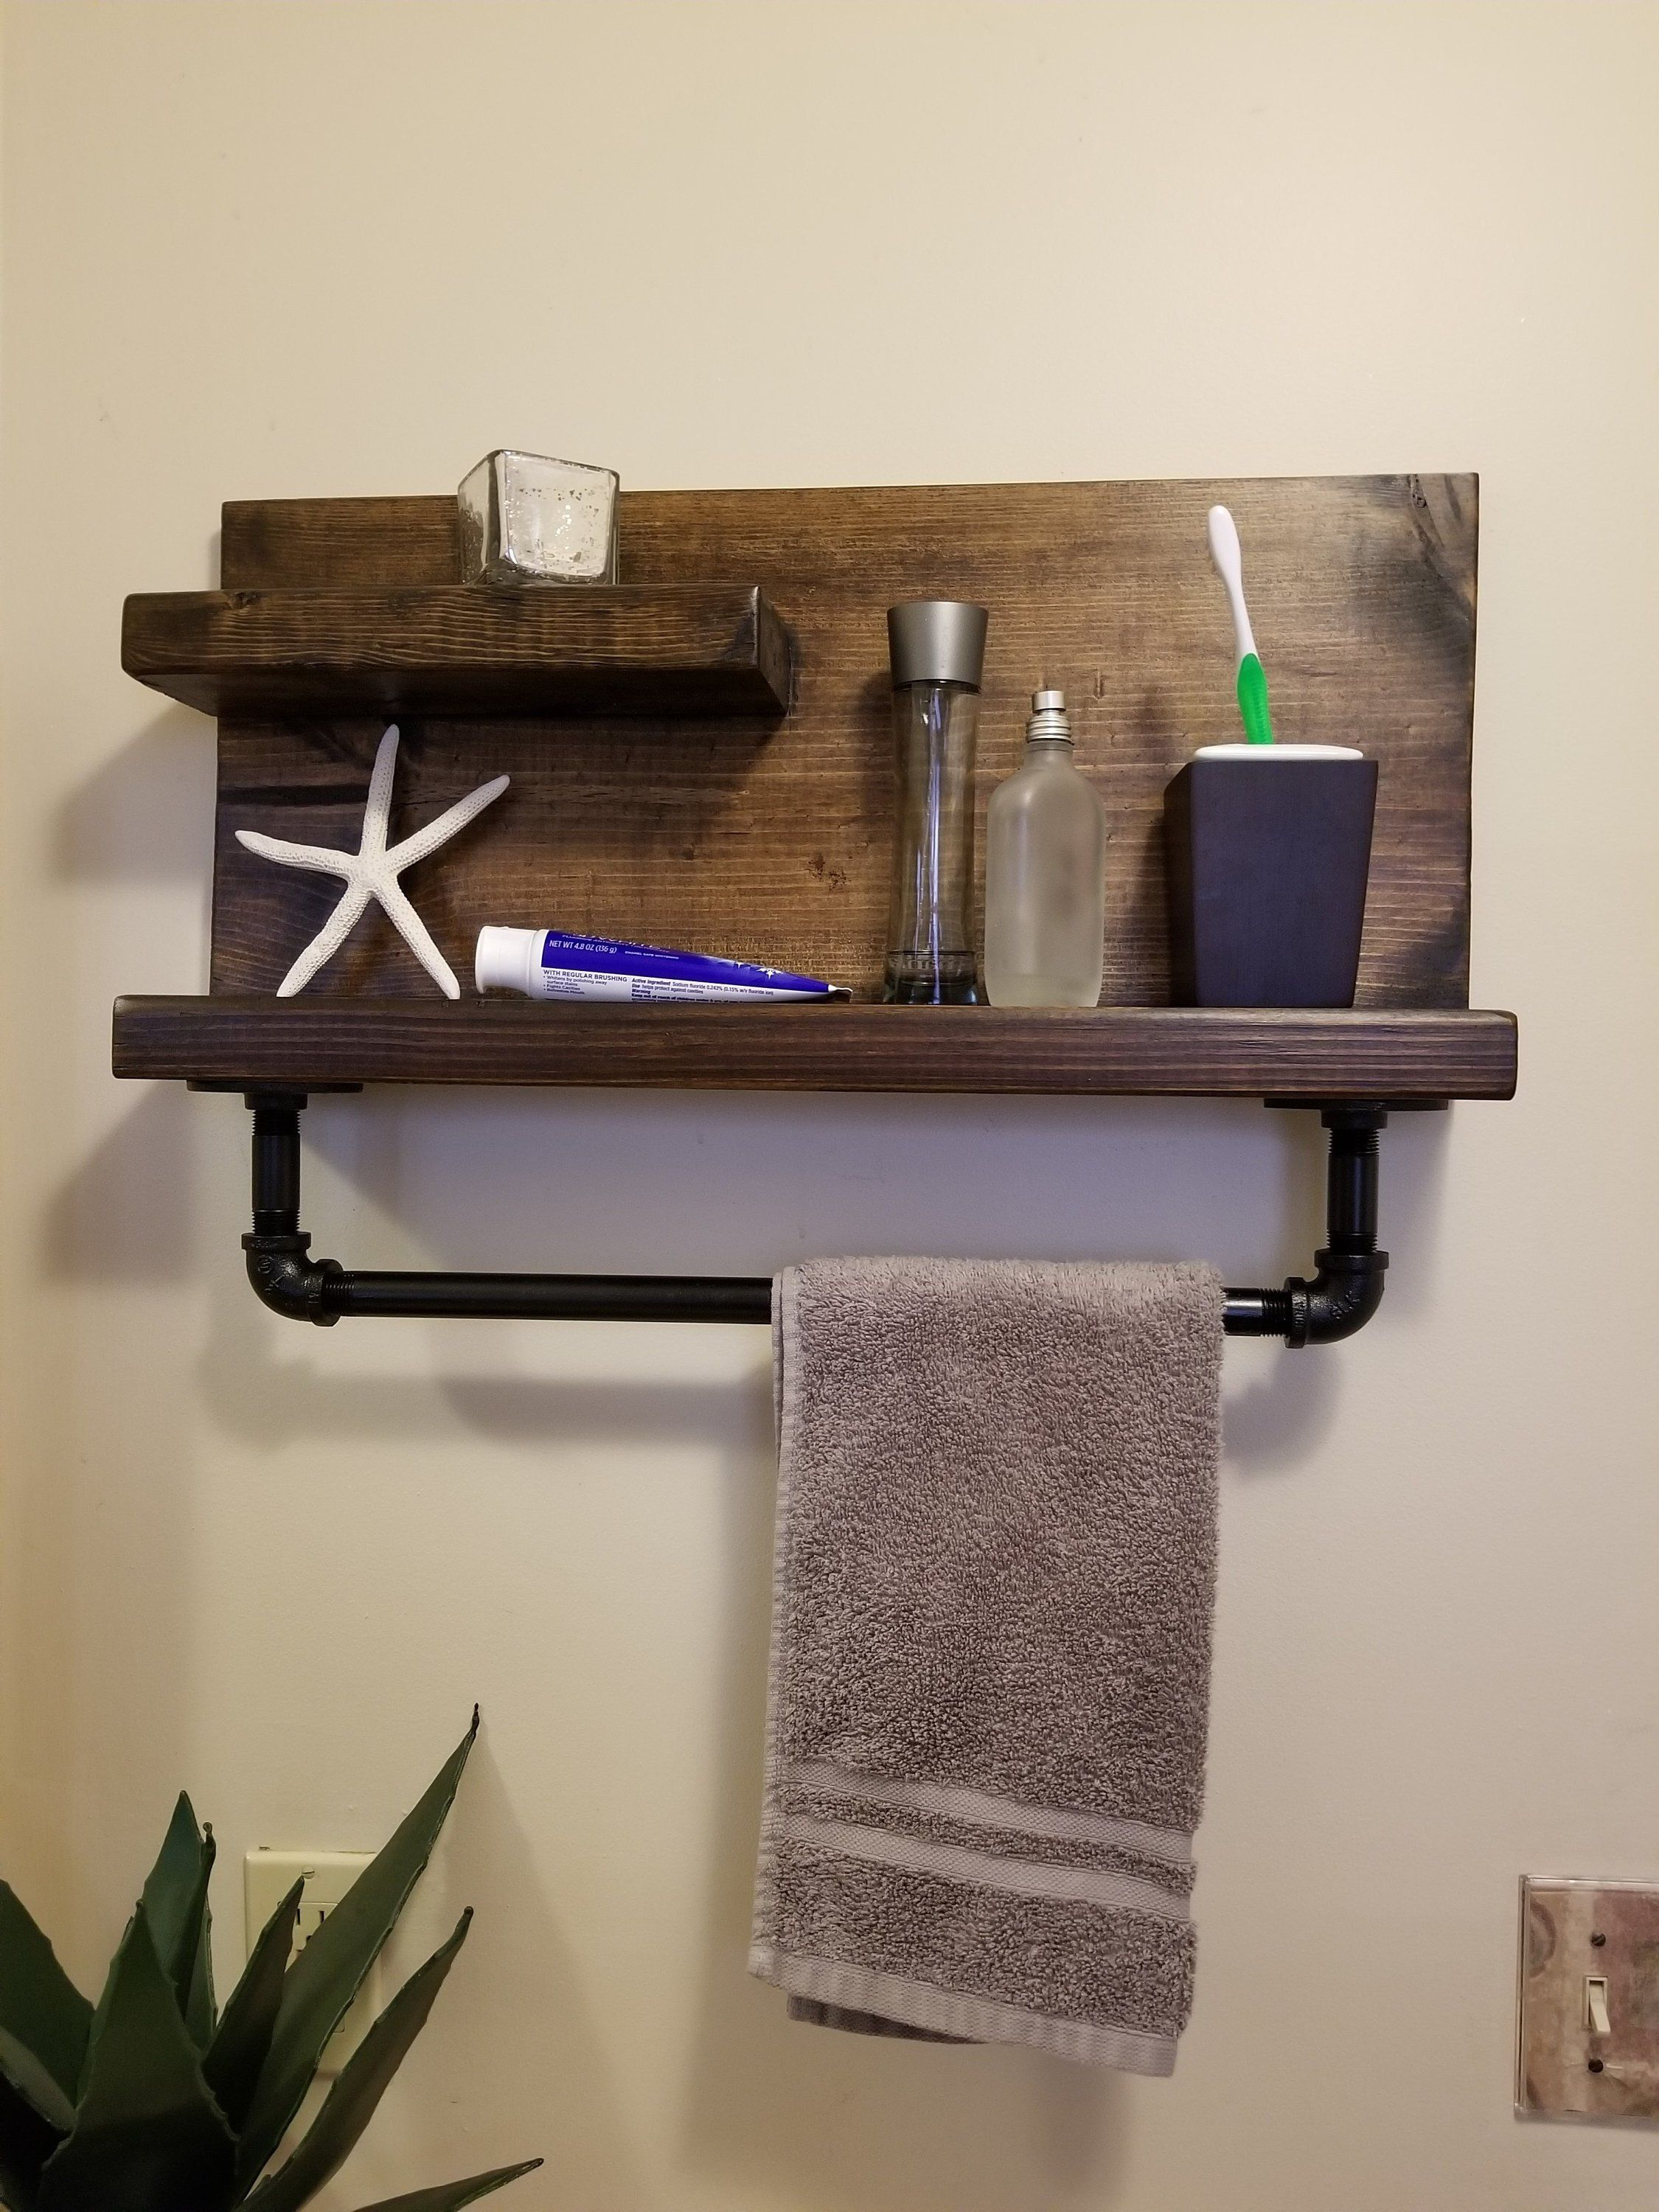 Reclaimed Wood Bathroom Shelf With Towel Rack Bathroom Wood Shelves Towel Rack Wood Bathroom